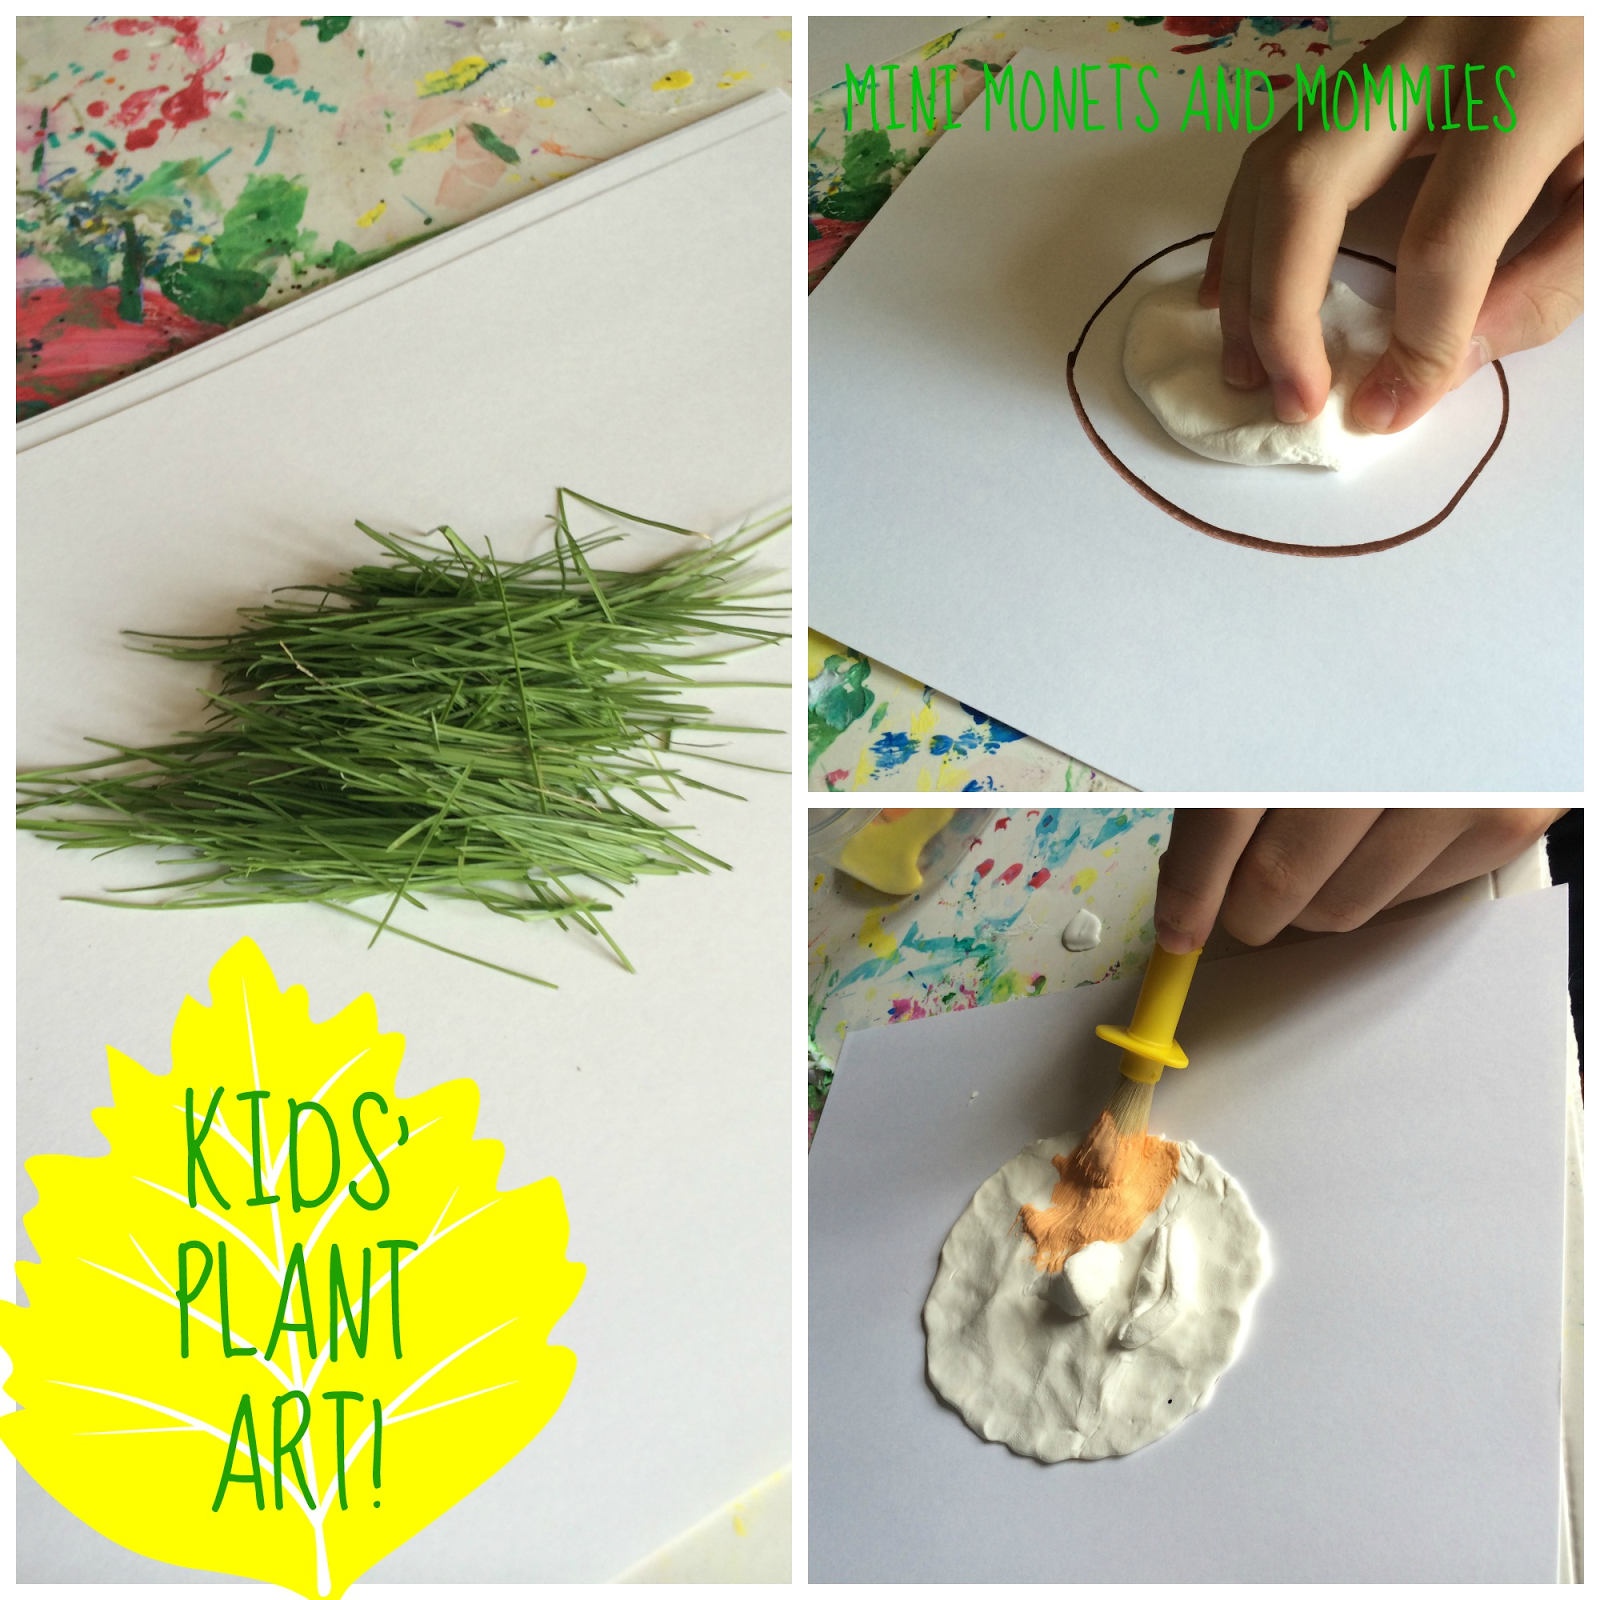 Plants arts and crafts - Plants Arts And Crafts Gallery Of Plants Arts And Crafts